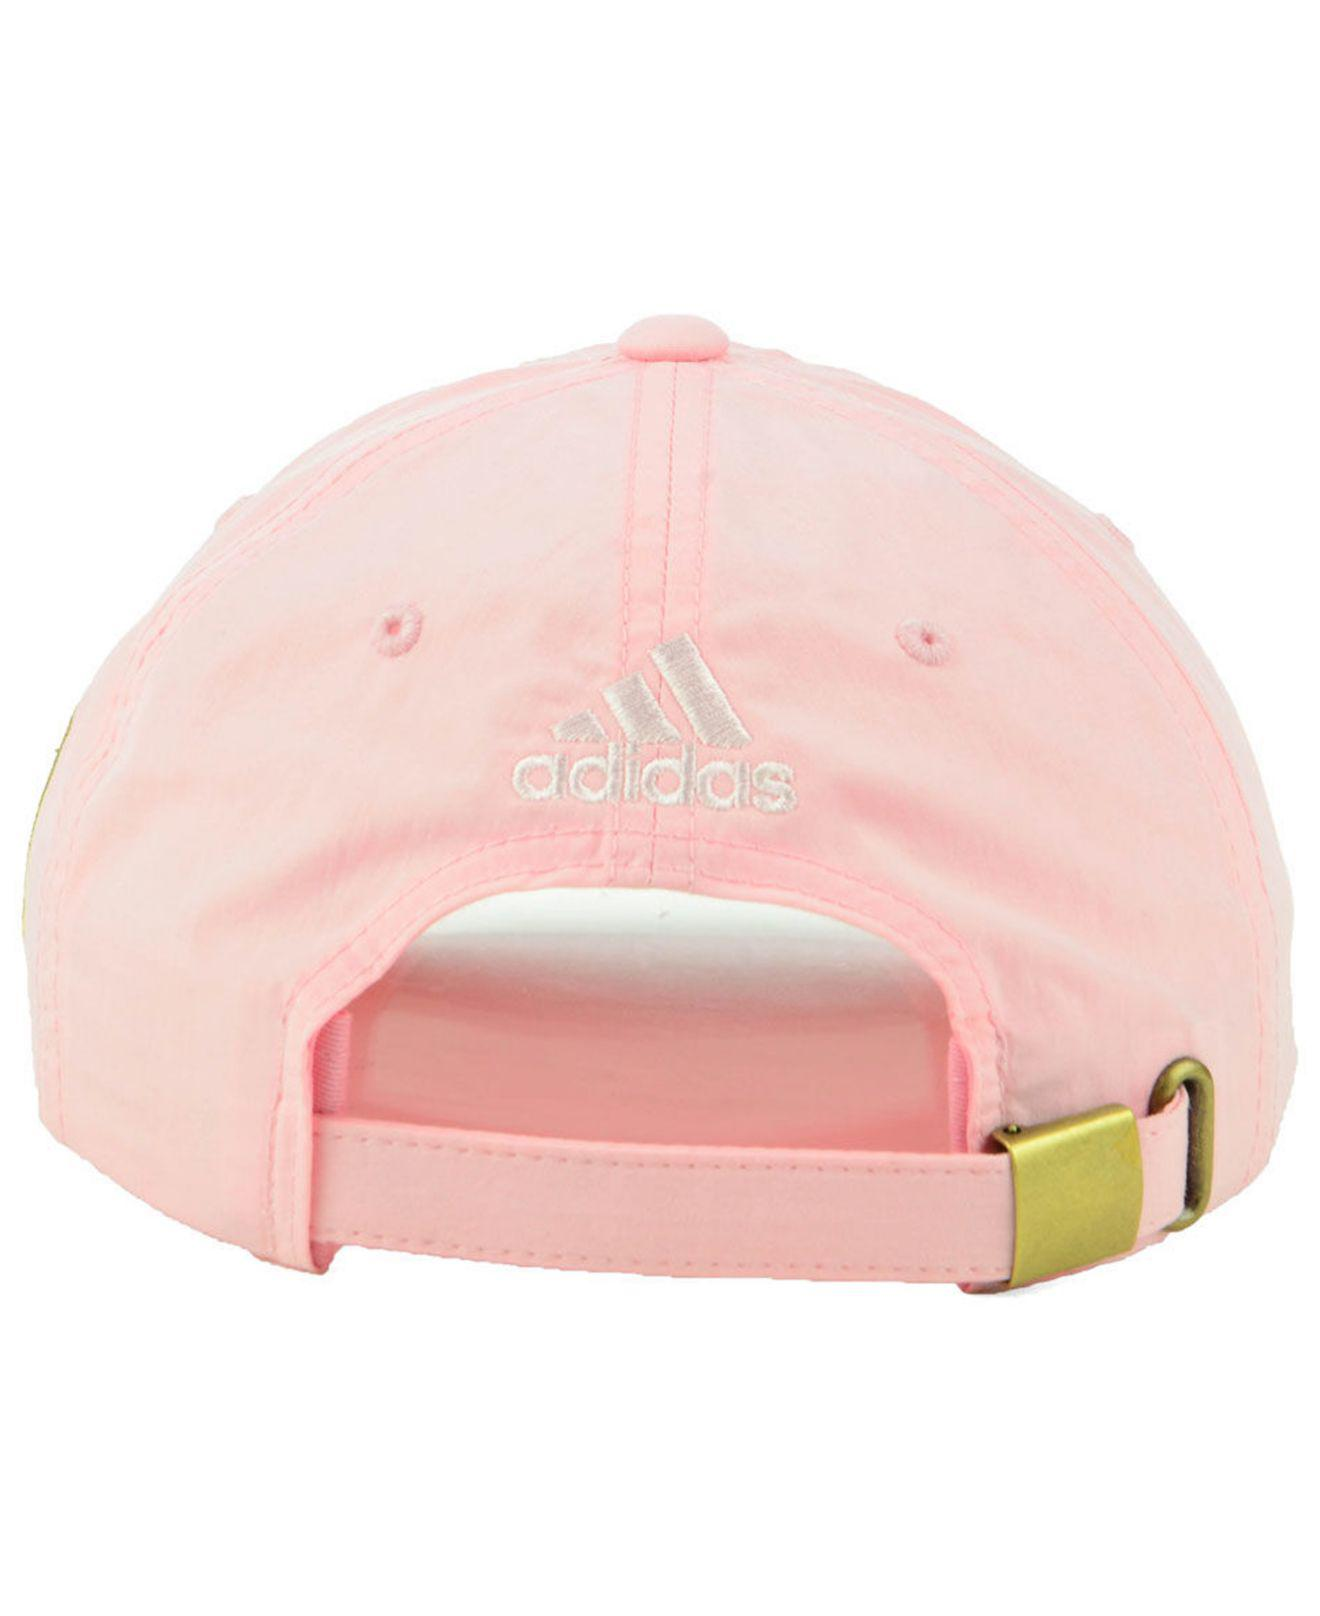 newest 9c89a 799b6 ... low price adidas los angeles football club pink easy adjustable cap lyst.  view fullscreen 5b5a6